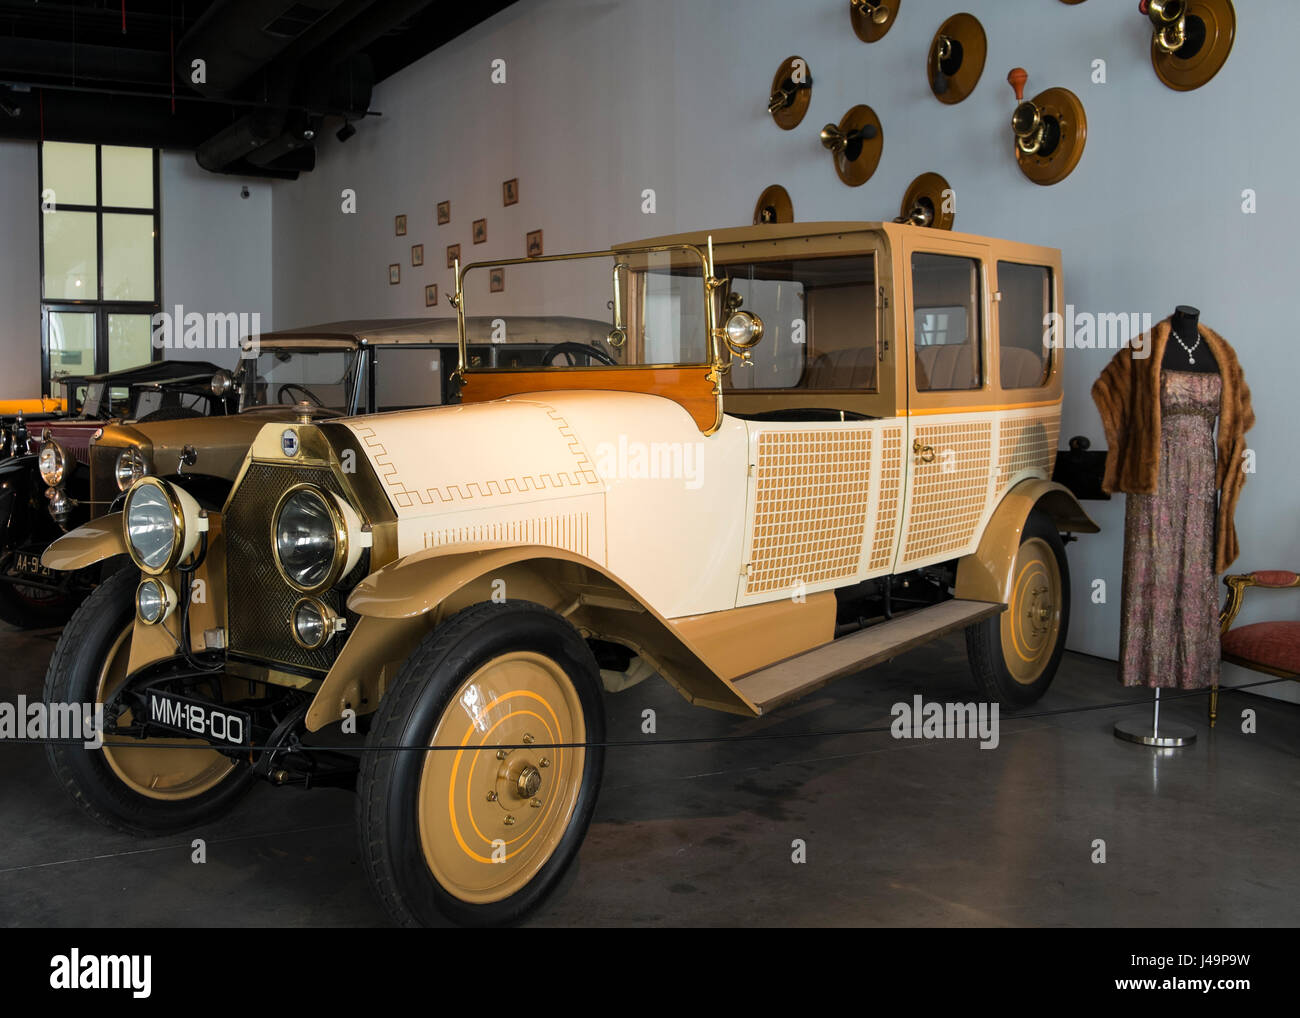 1921 Lancia Dikappa. Automobile museum of Málaga, Andalusia, Spain - Stock Image